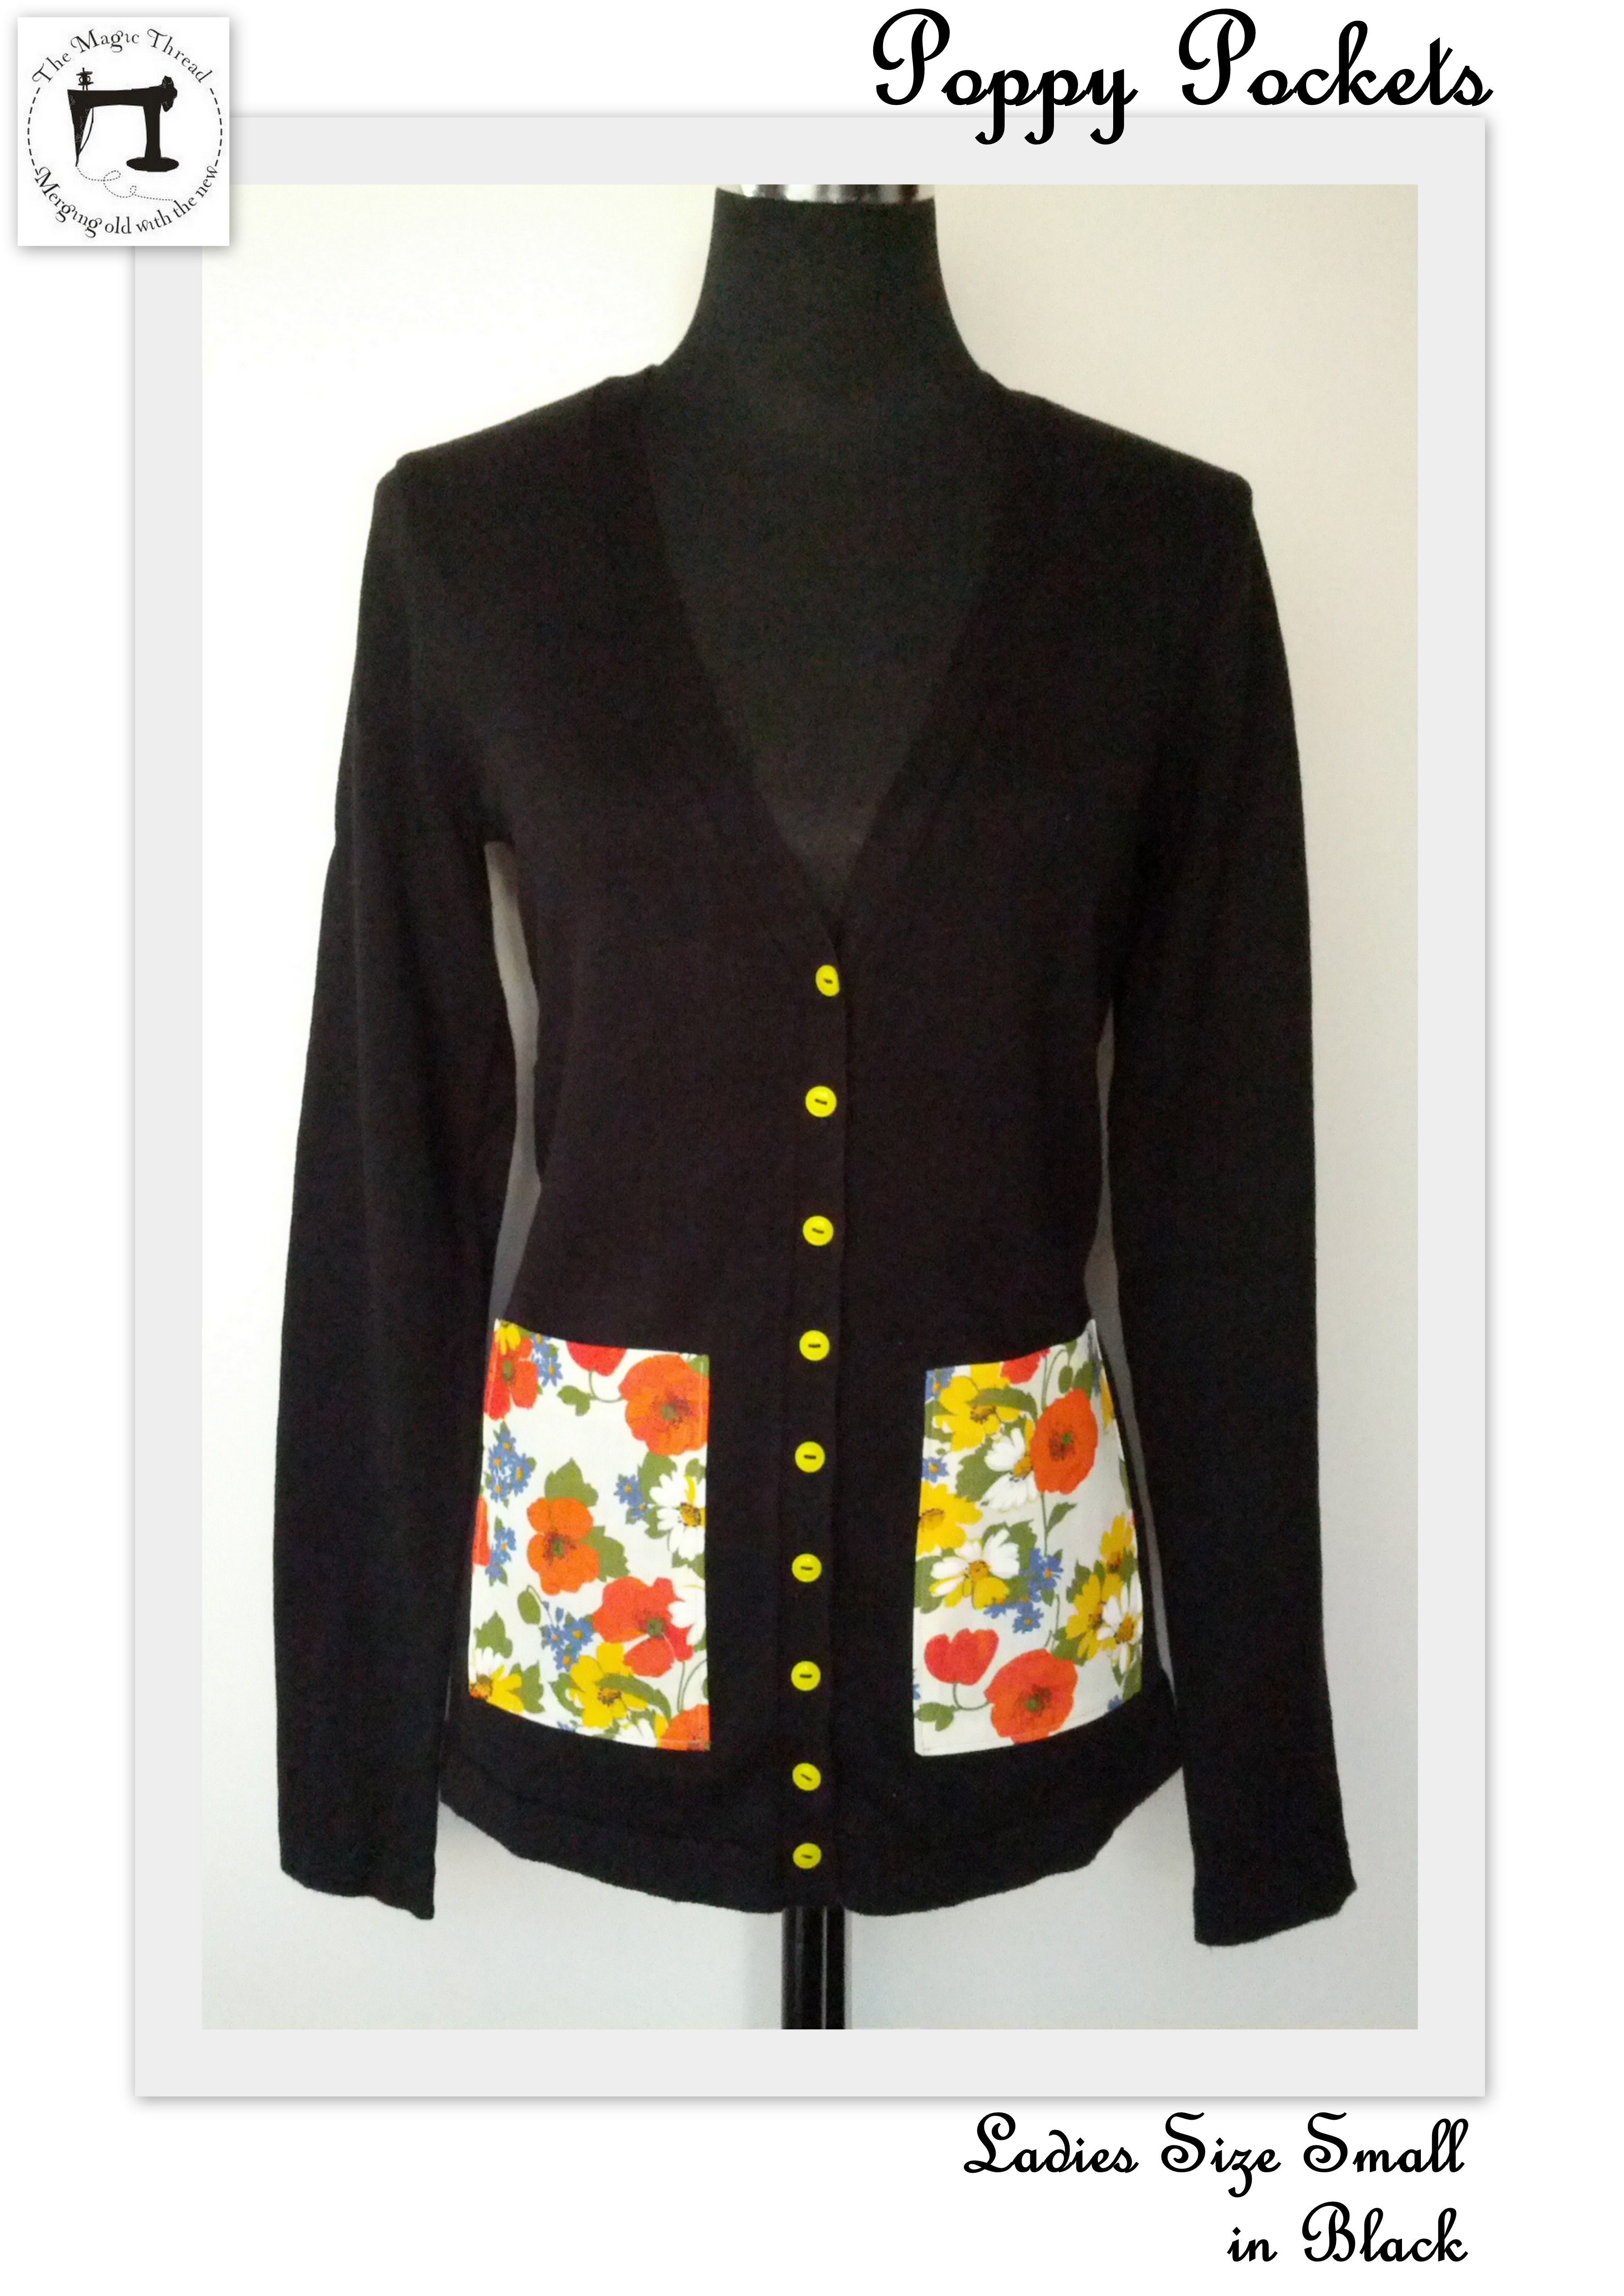 Custom Order for Coralie Nathan   Poppy Pockets Ladies Size Small  Made in a black long style cardigan embellished with vintage 70's floral fabric pockets and yellow vintage buttons.  Can be worn buttoned up casually with hands in pockets and undone loosely whichever you choose for this comfy yet stylish 100% cotton knit cardigan!